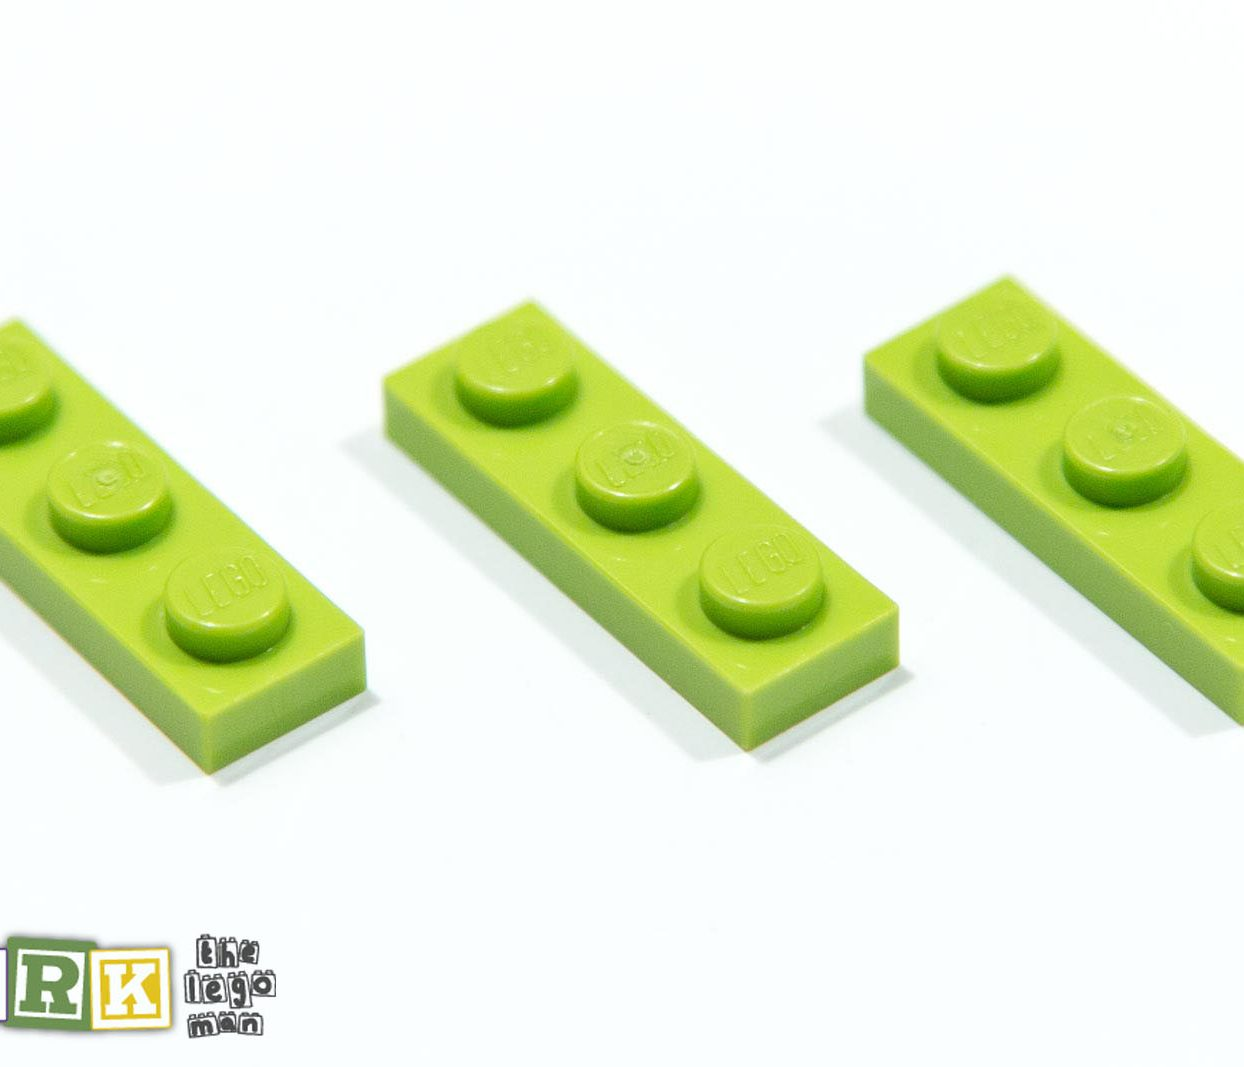 4210210 3623 Job Lot 3x Bright Yellow Green 1x3 Plate